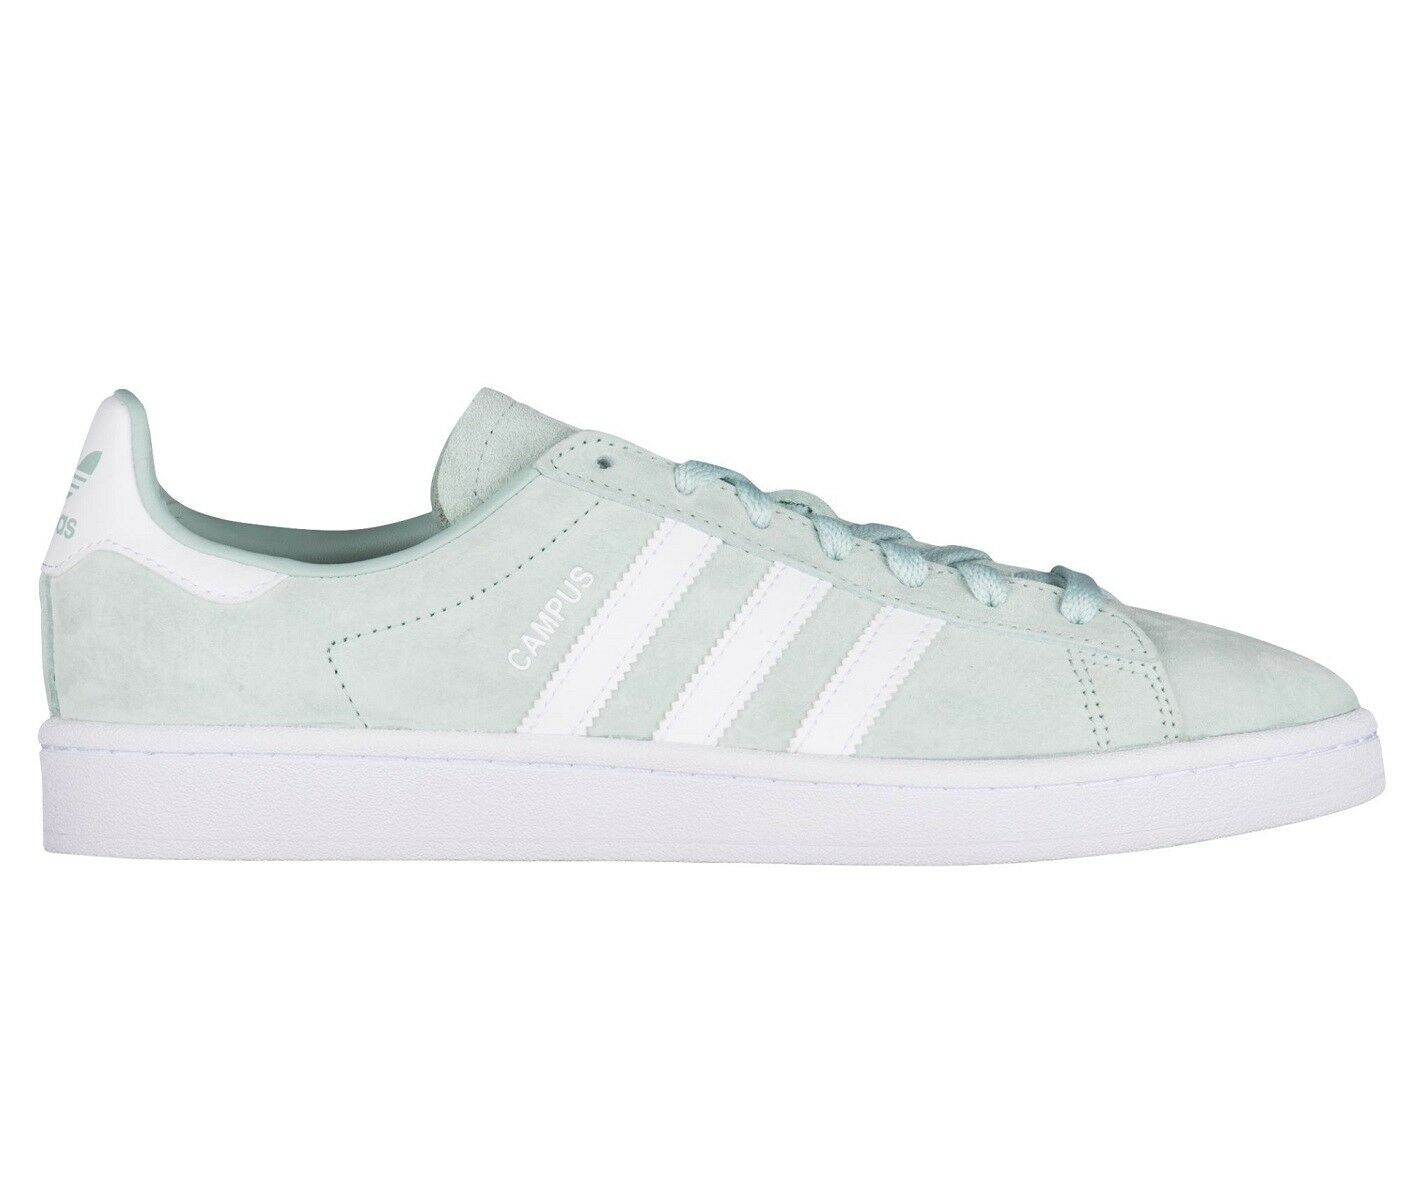 Adidas Campus Mens DB0982 Ash Green White Nubuck Suede Athletic shoes Size 11